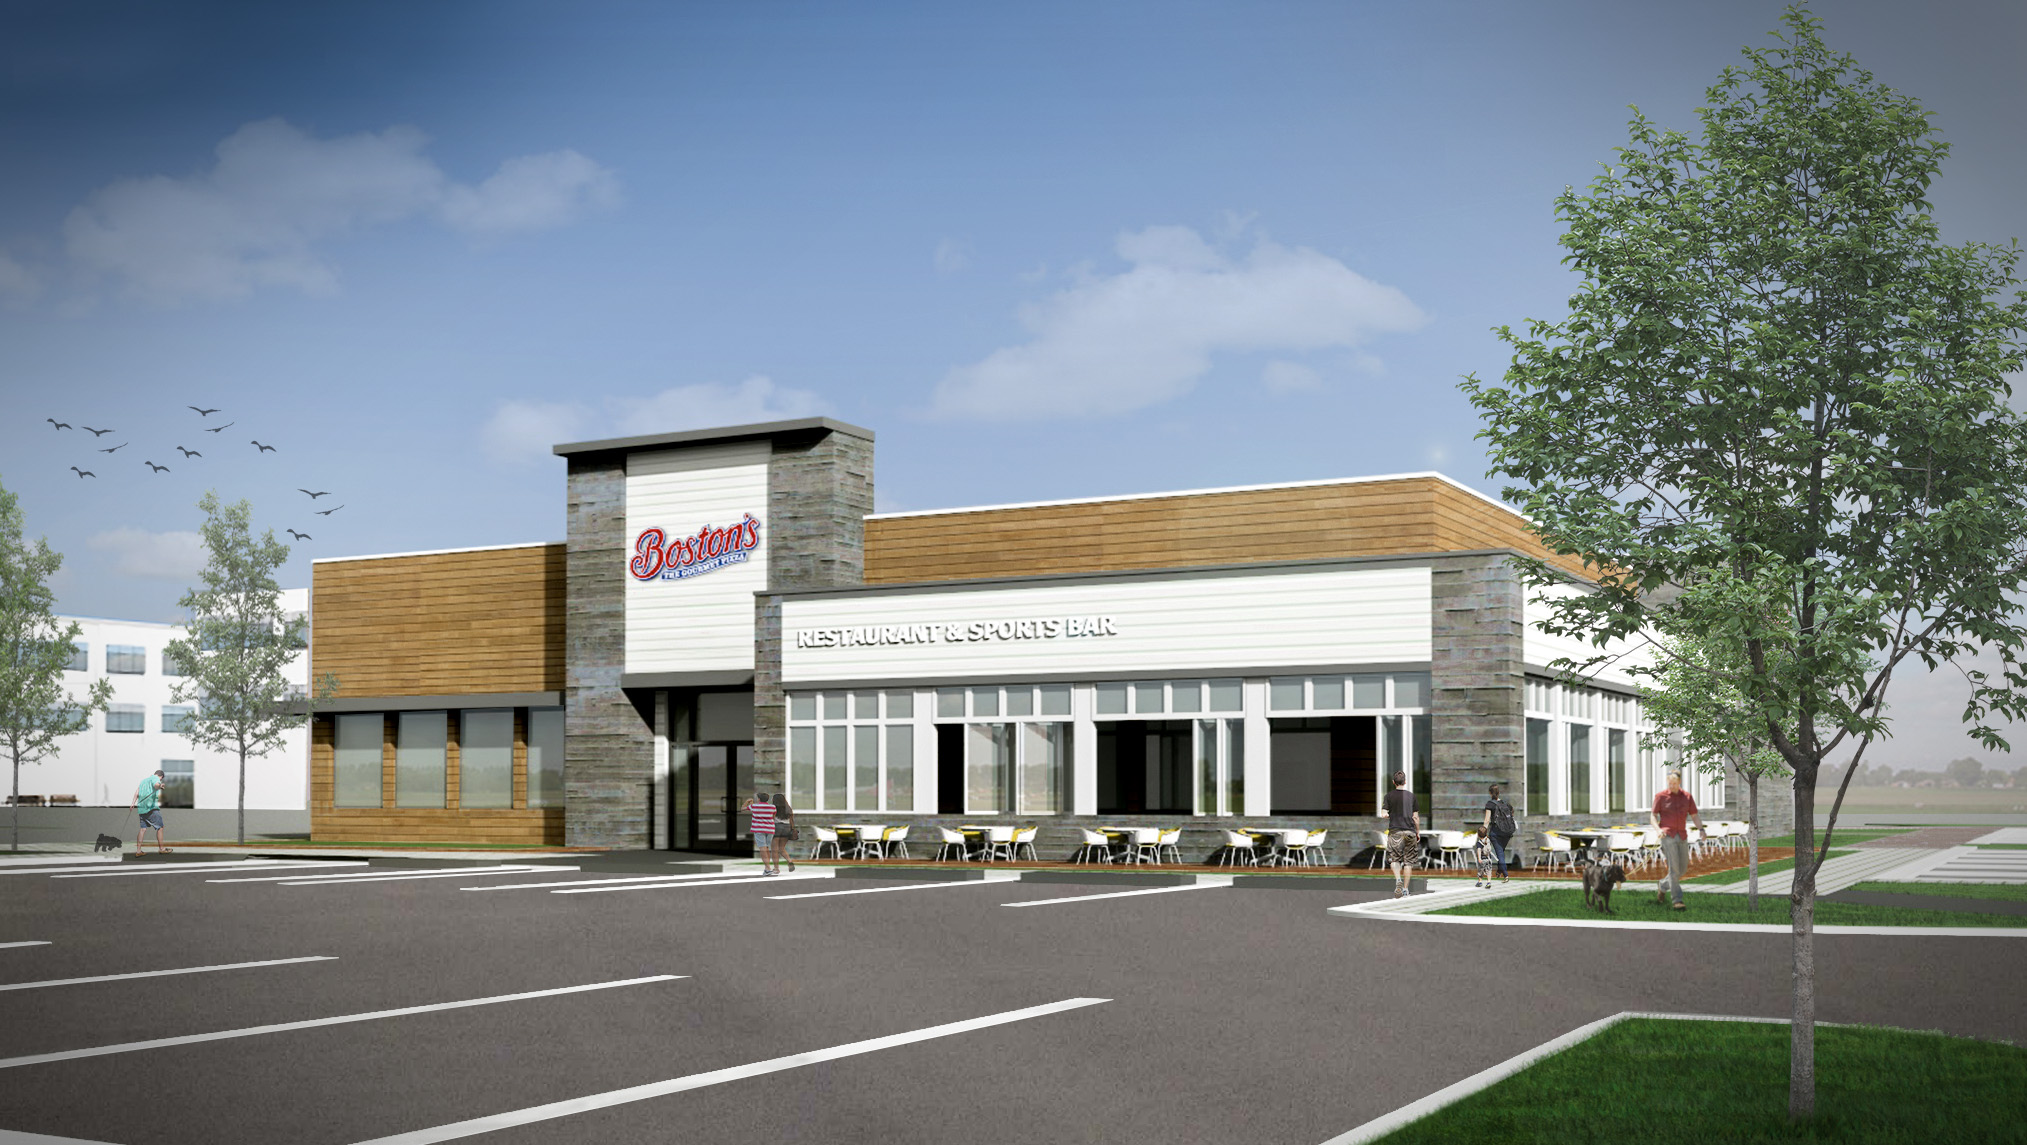 Bostons' Pizza Restaurant Rendering